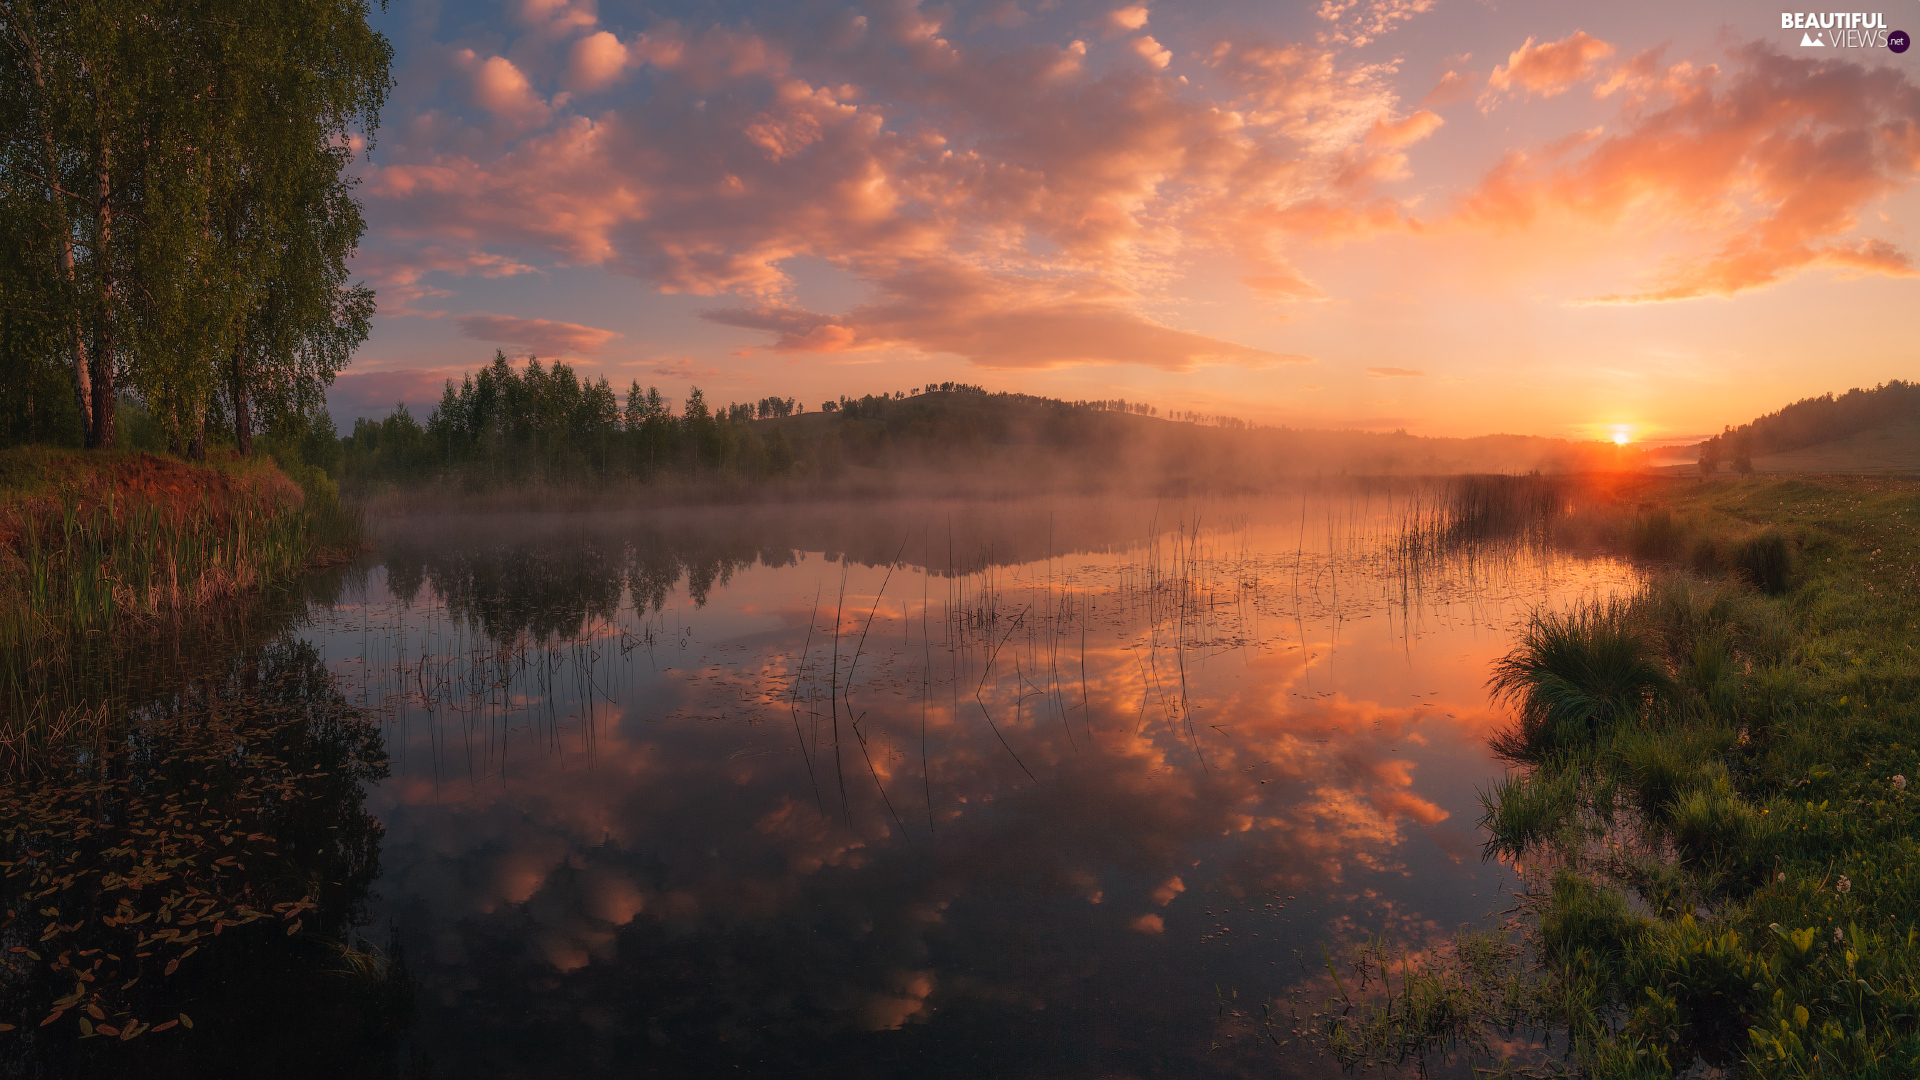 Fog, trees, clouds, viewes, lake, Sunrise, reflection